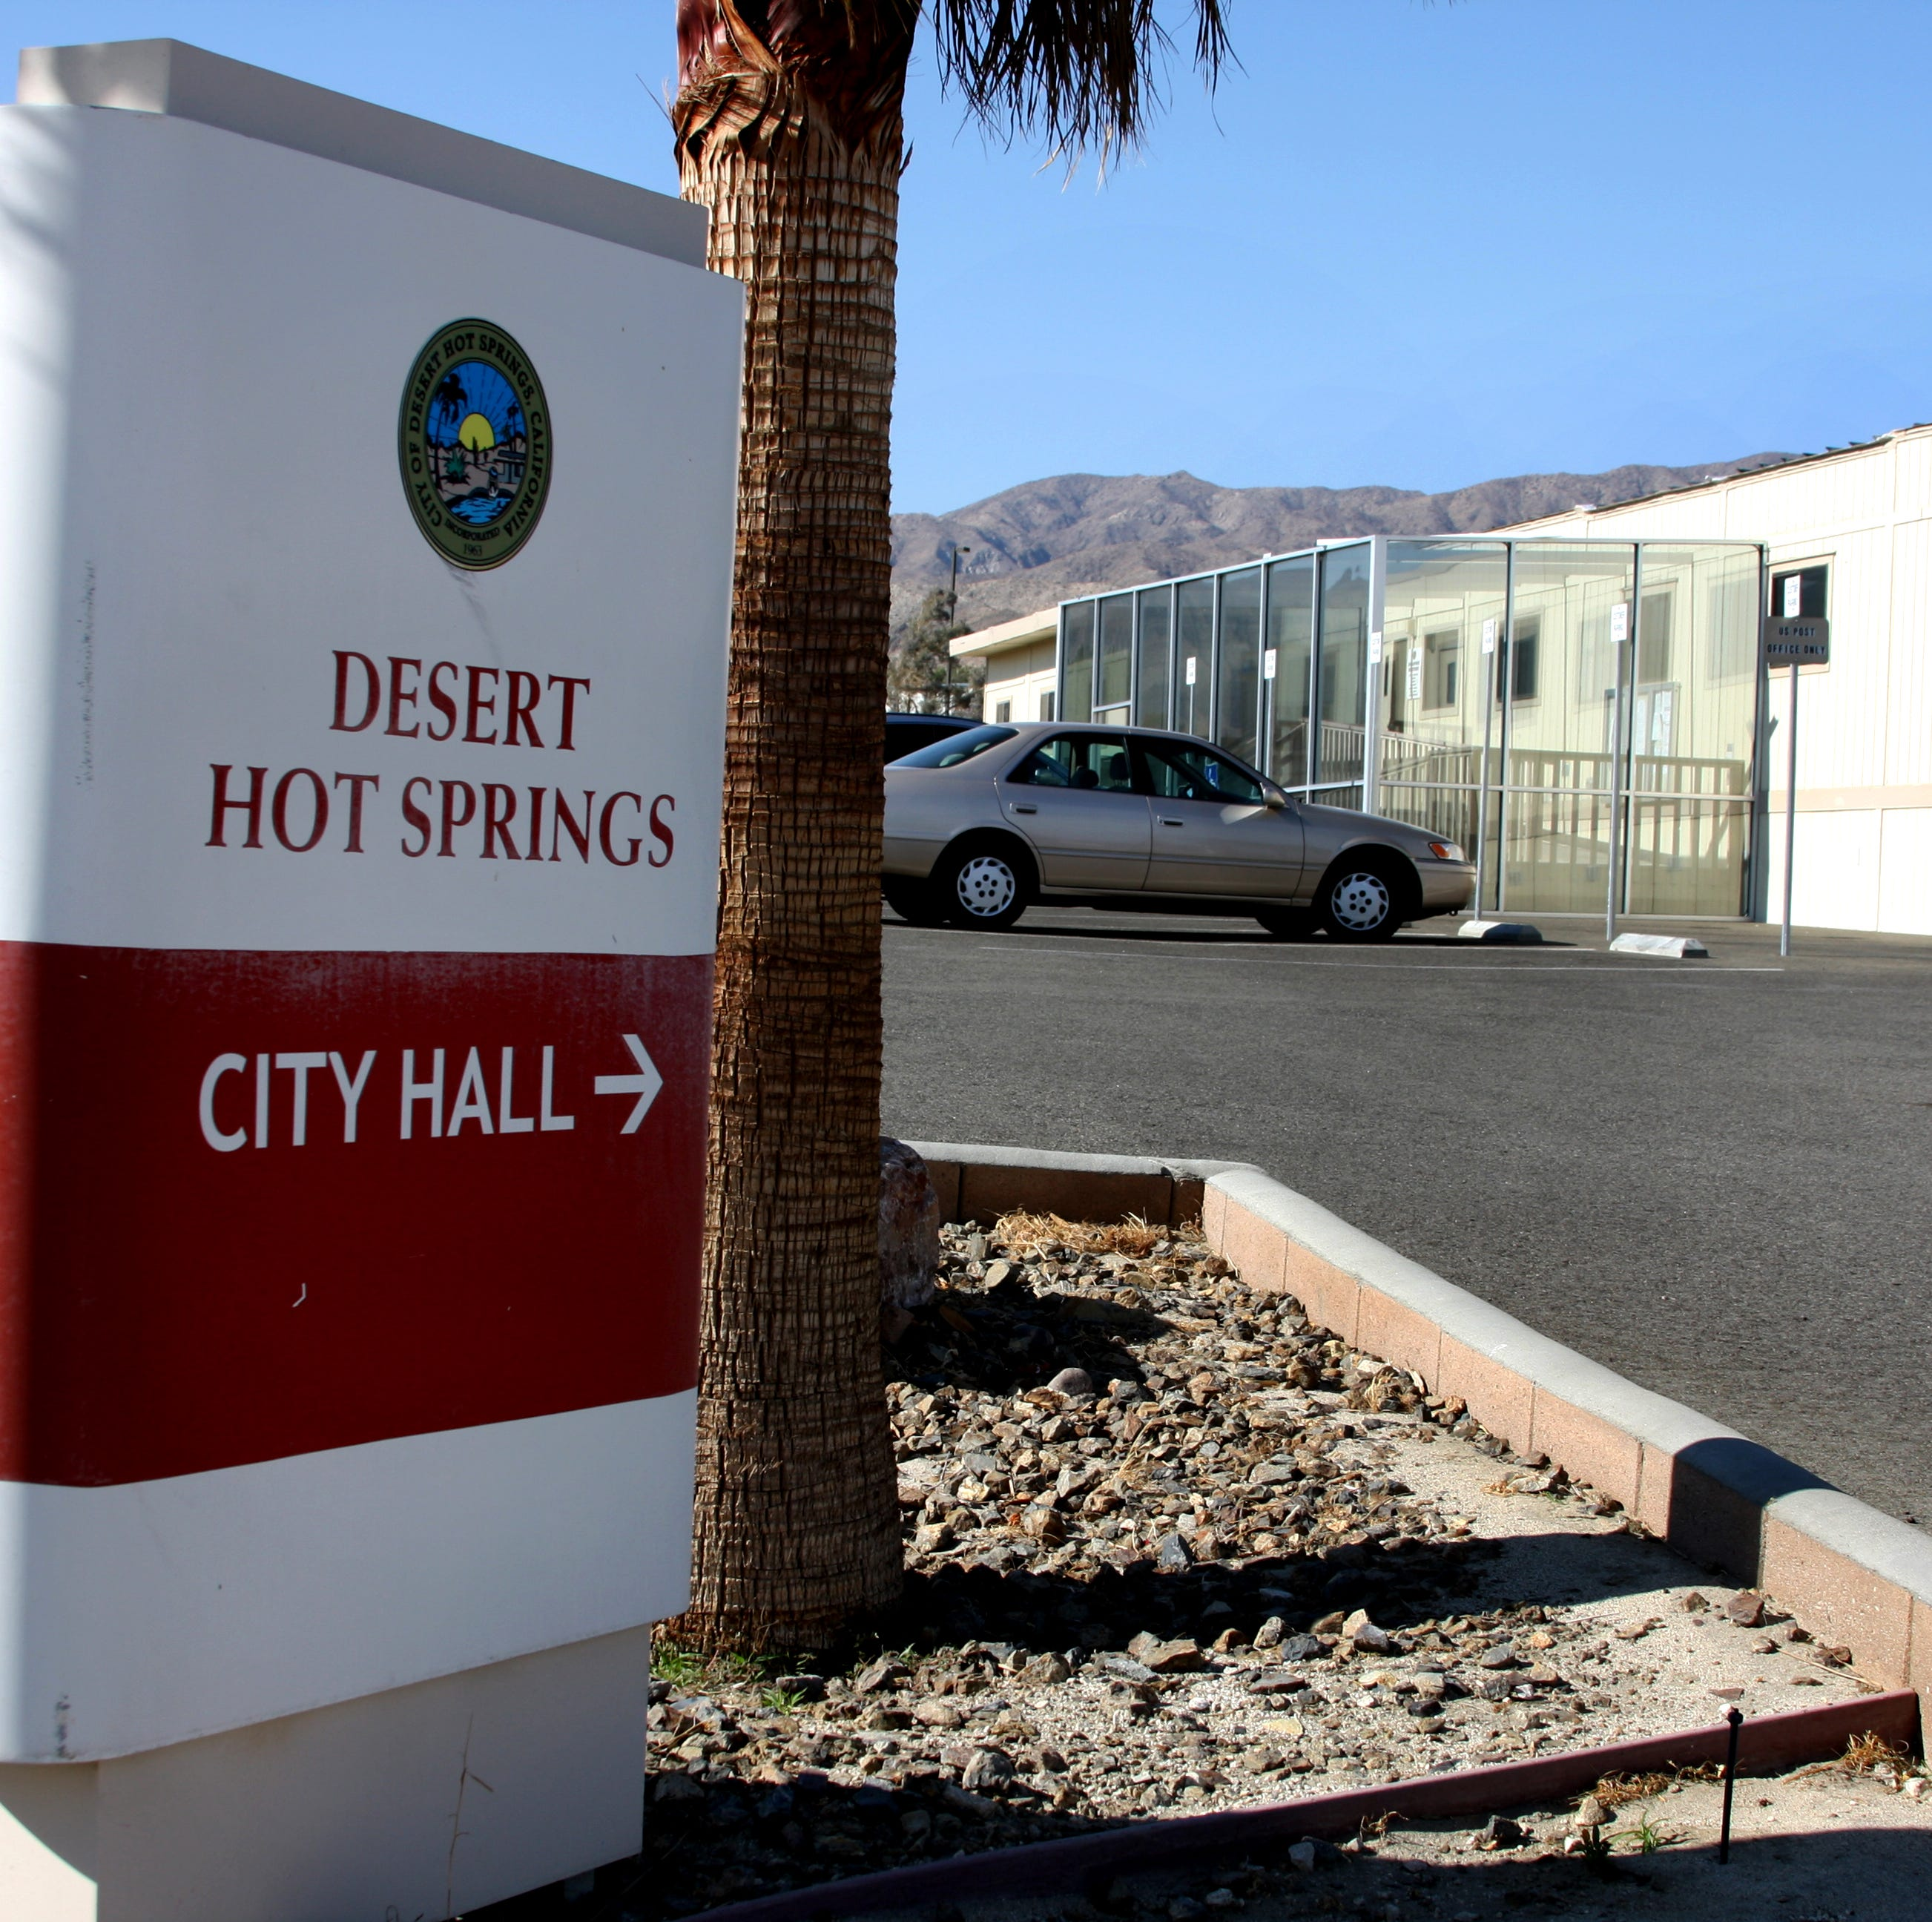 Desert Hot Springs animal hospital a desperately needed community member